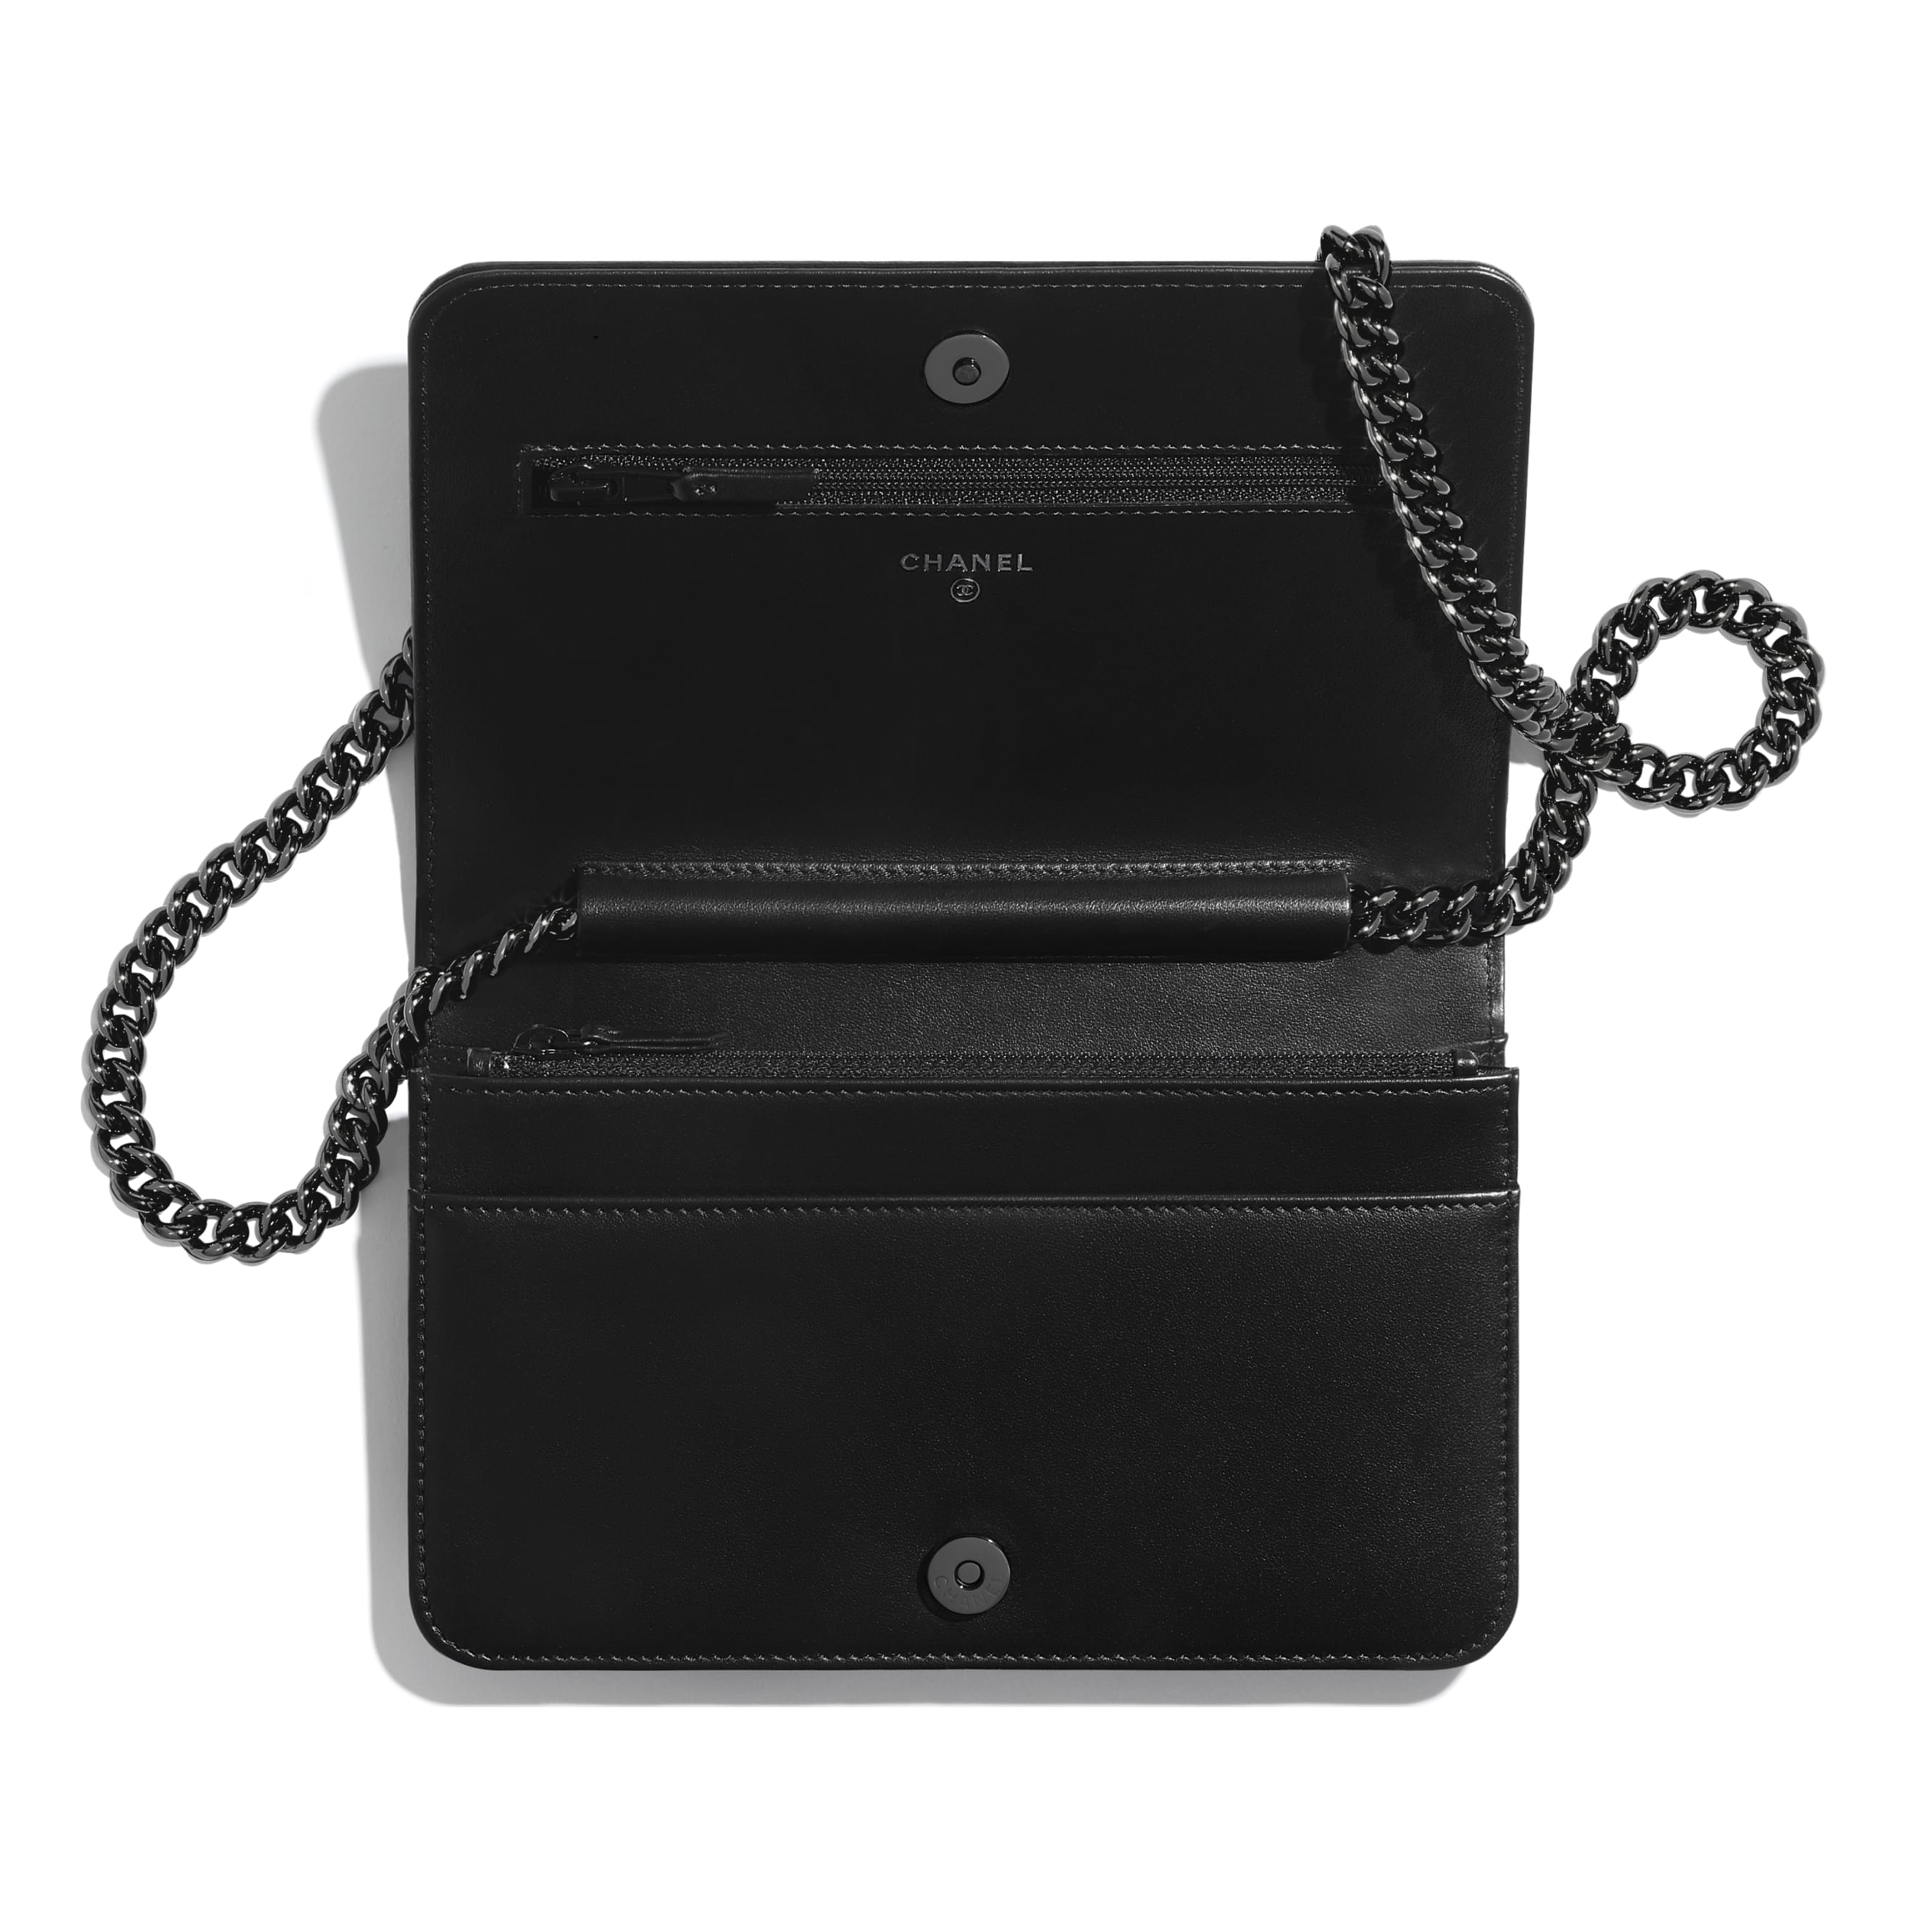 BOY CHANEL Wallet On Chain - Black - Aged Calfskin & Ruthenium-Finish Metal - CHANEL - Other view - see standard sized version